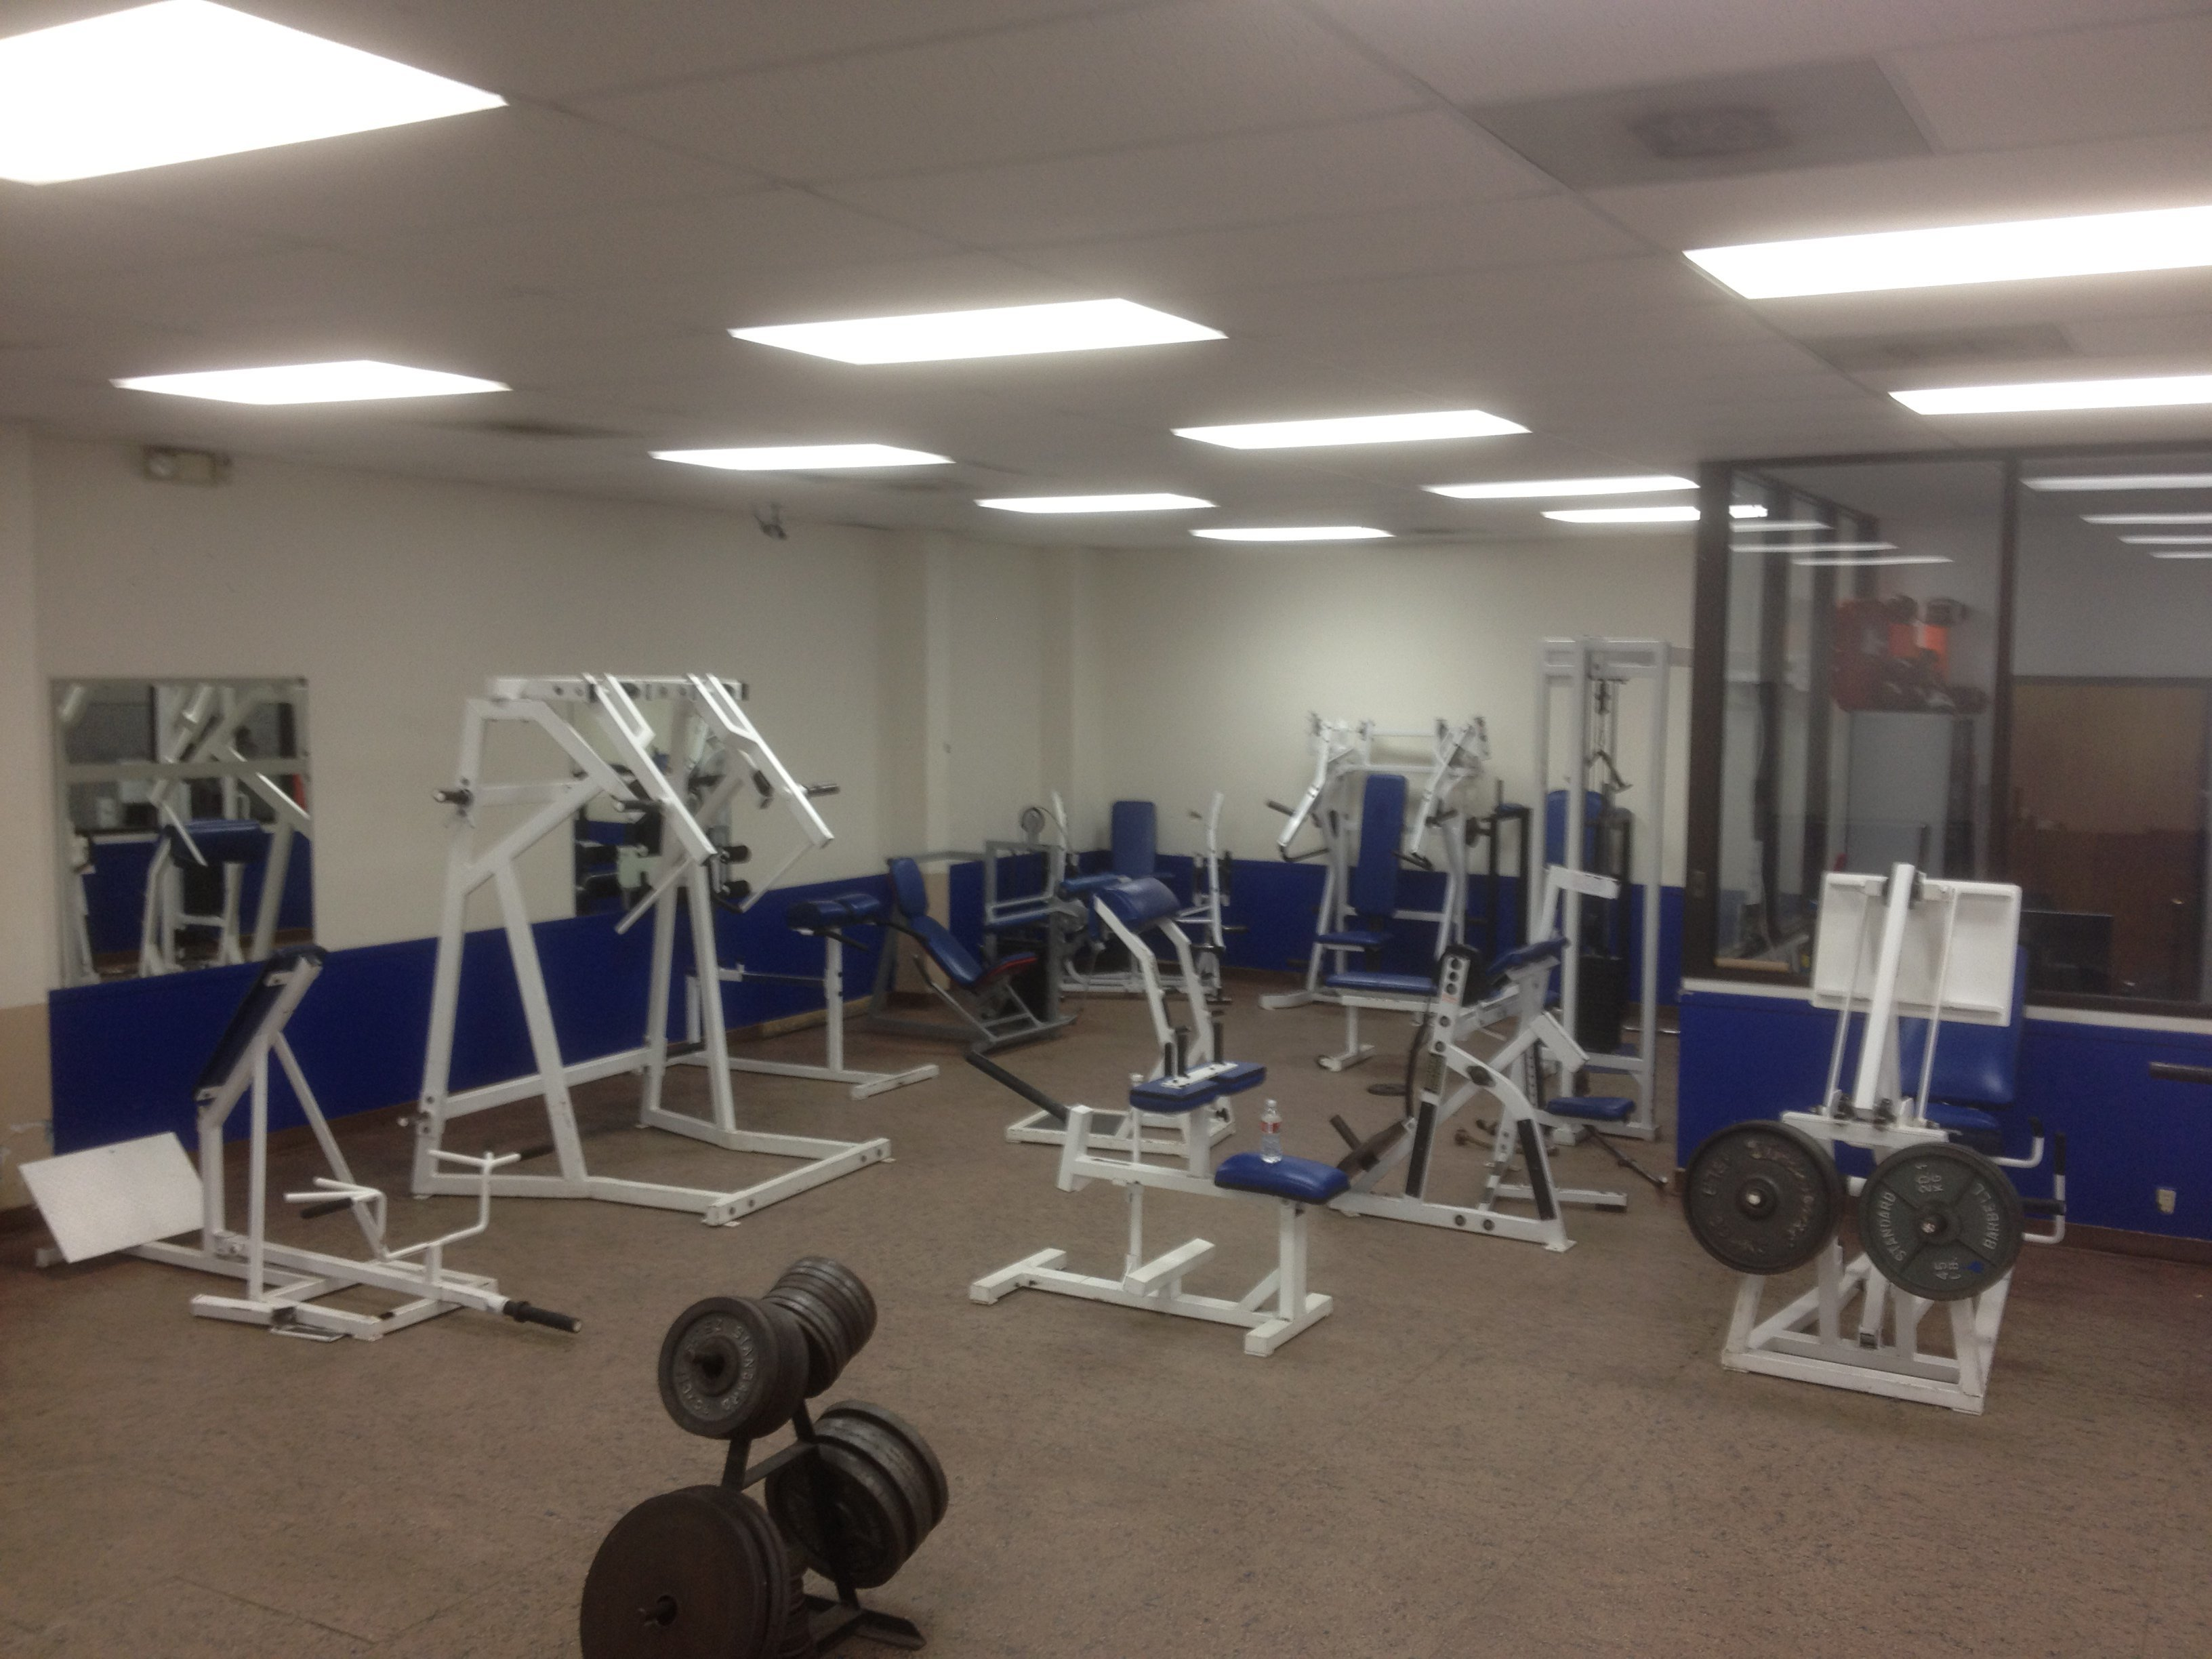 Weight-Room-3.JPG#asset:1902